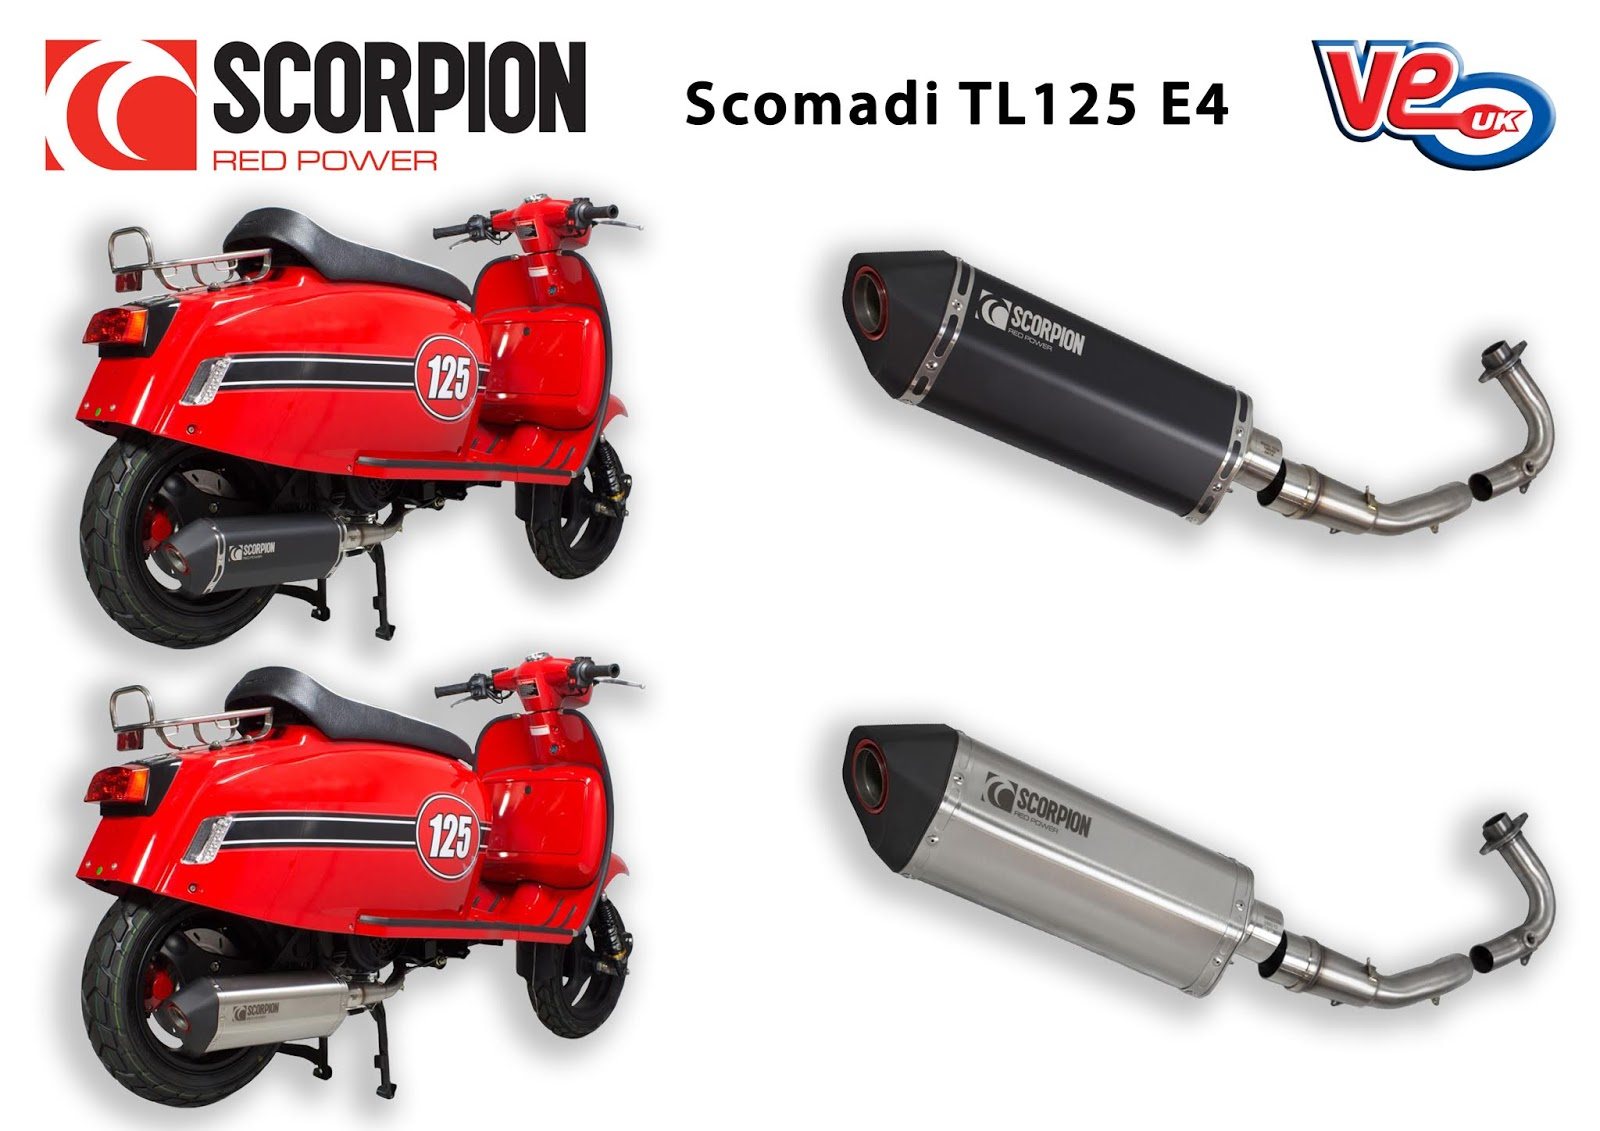 Scorpion Serket Exhaust for Scomadi TL 125 Euro 4